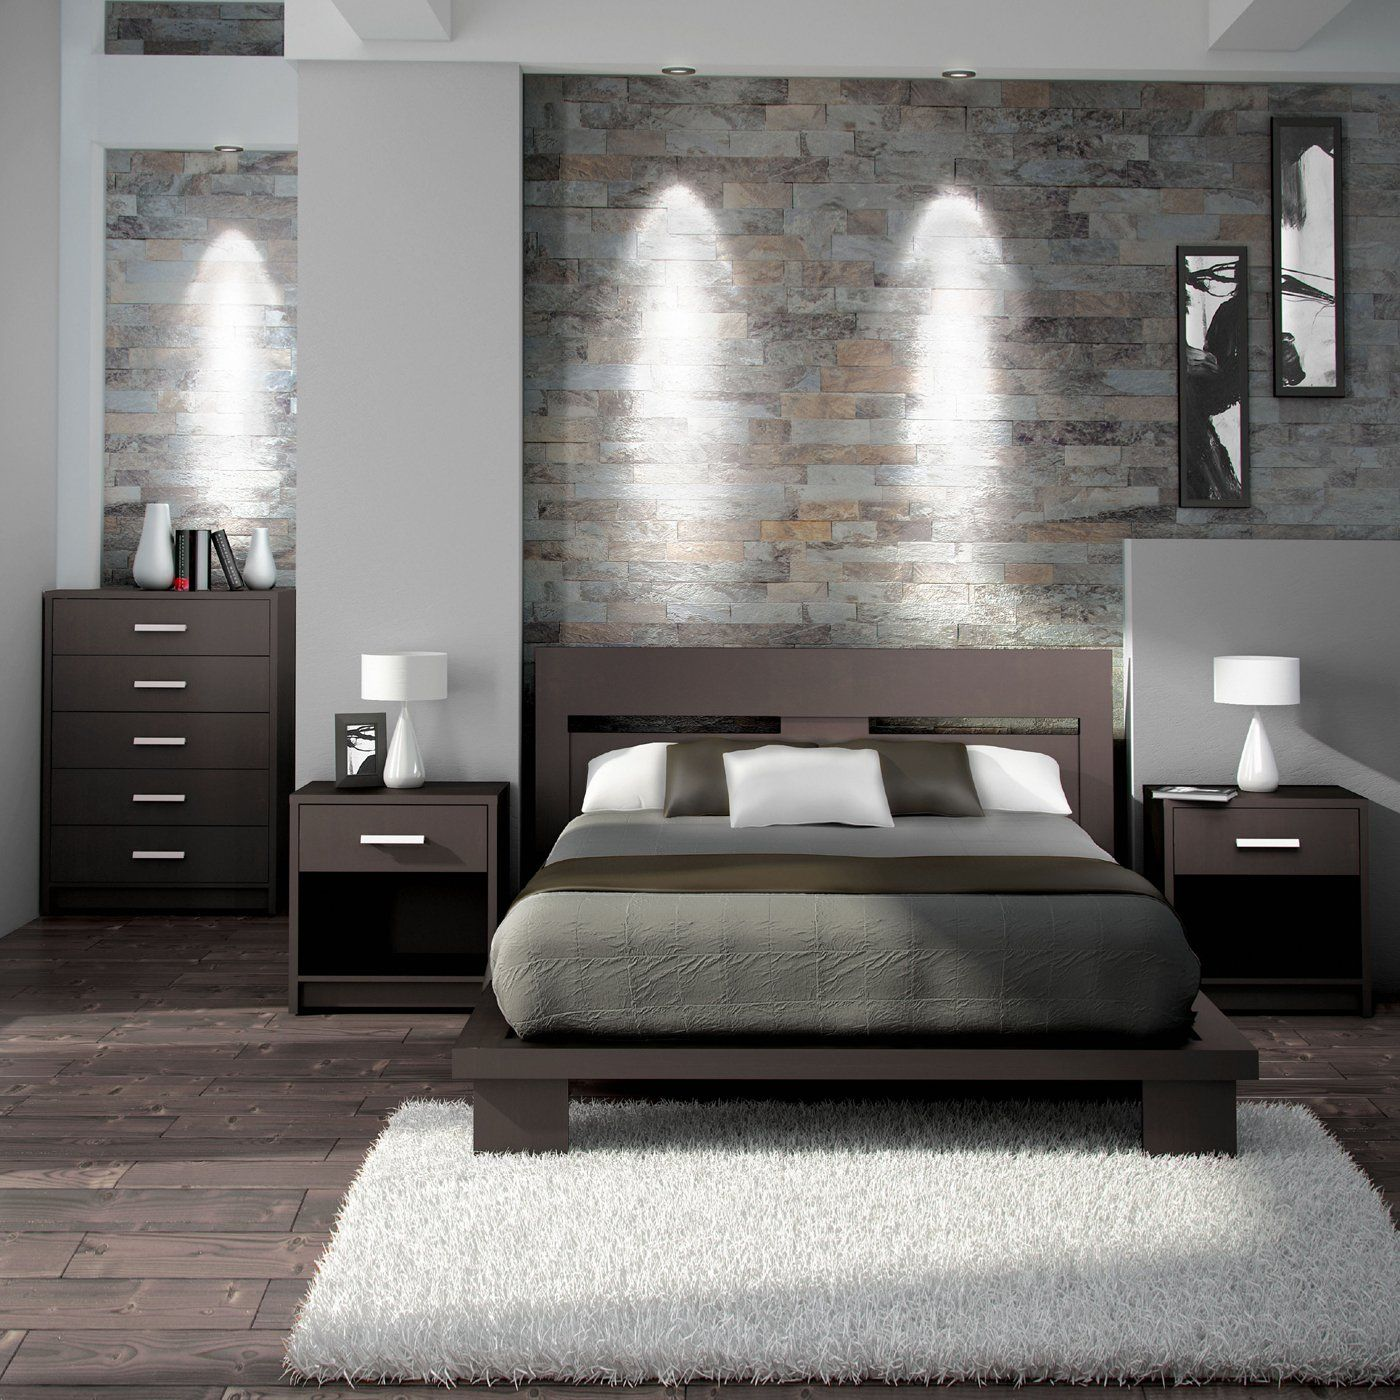 Modern bedroom furniture A simple and modern bedroom set in espresso brown.  itu0027s created with DVDJMPE